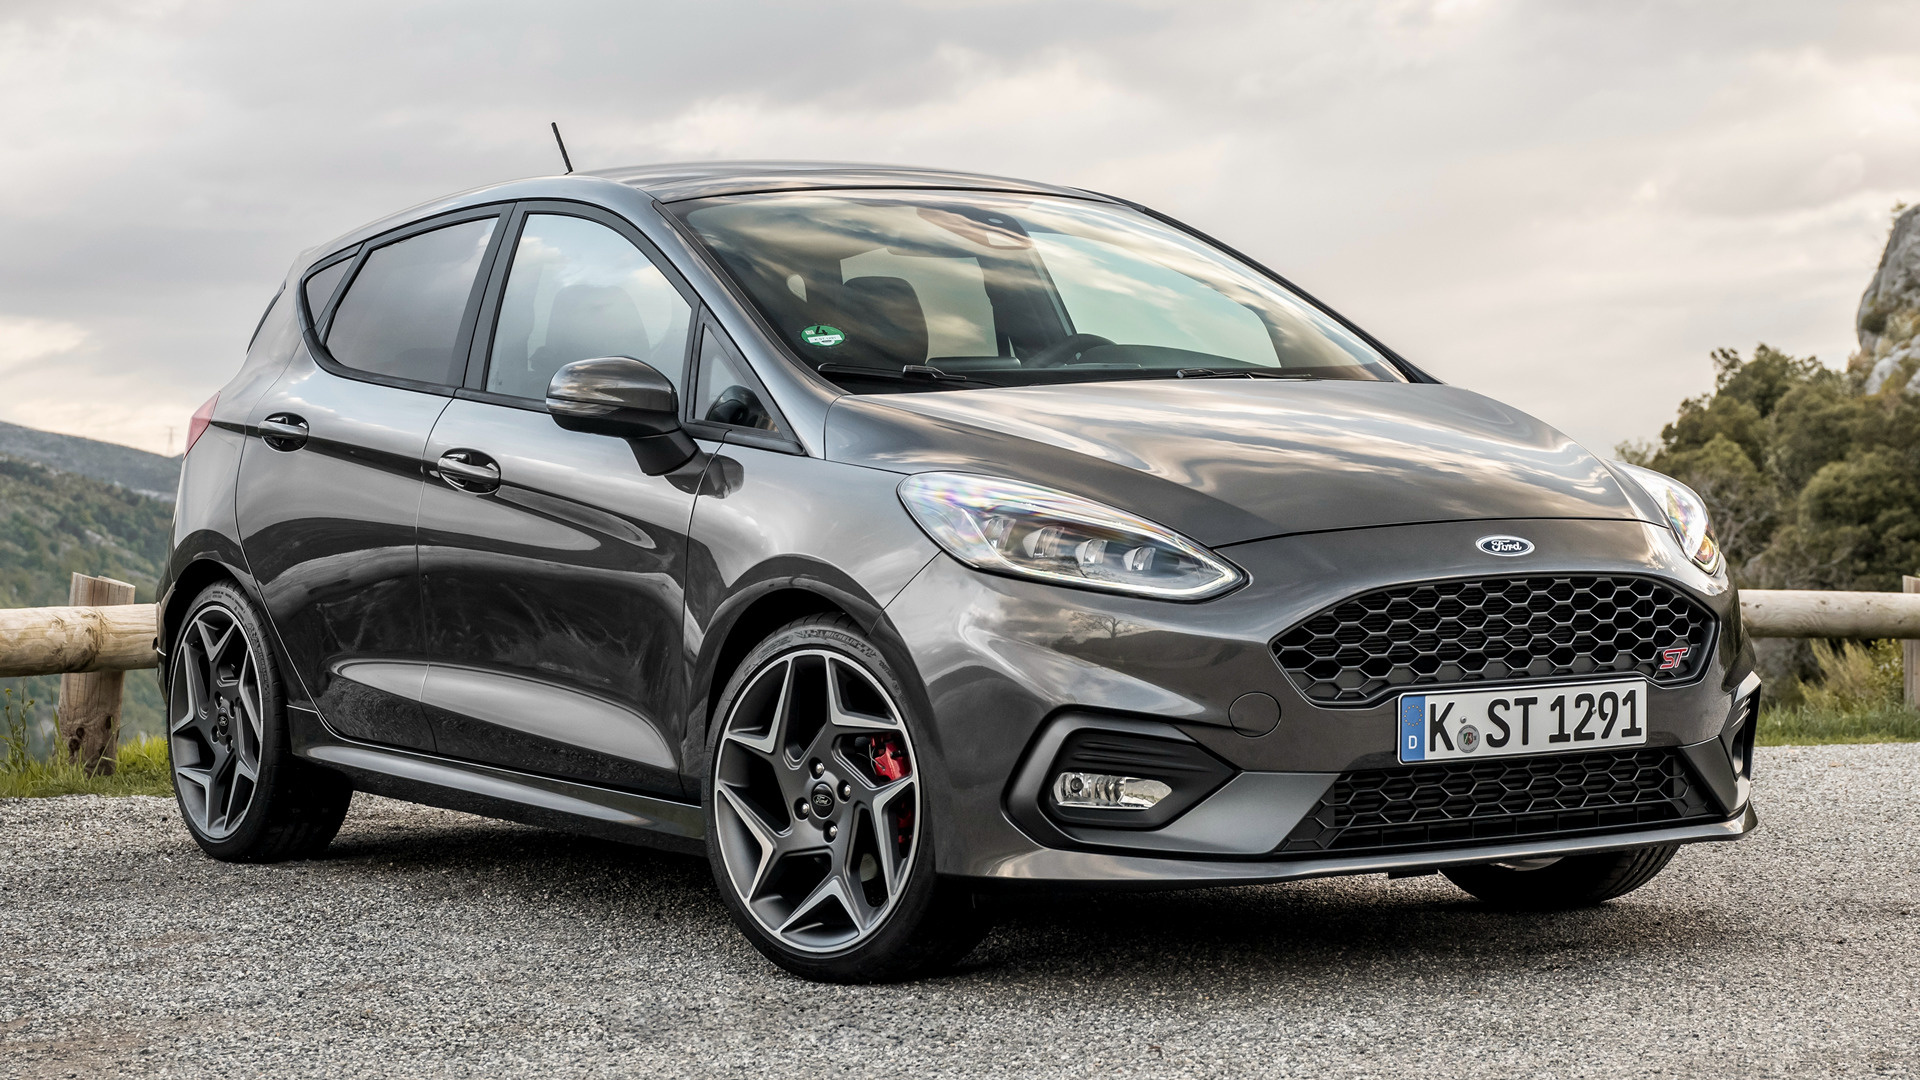 2018 ford fiesta st 5 door wallpapers and hd images. Black Bedroom Furniture Sets. Home Design Ideas